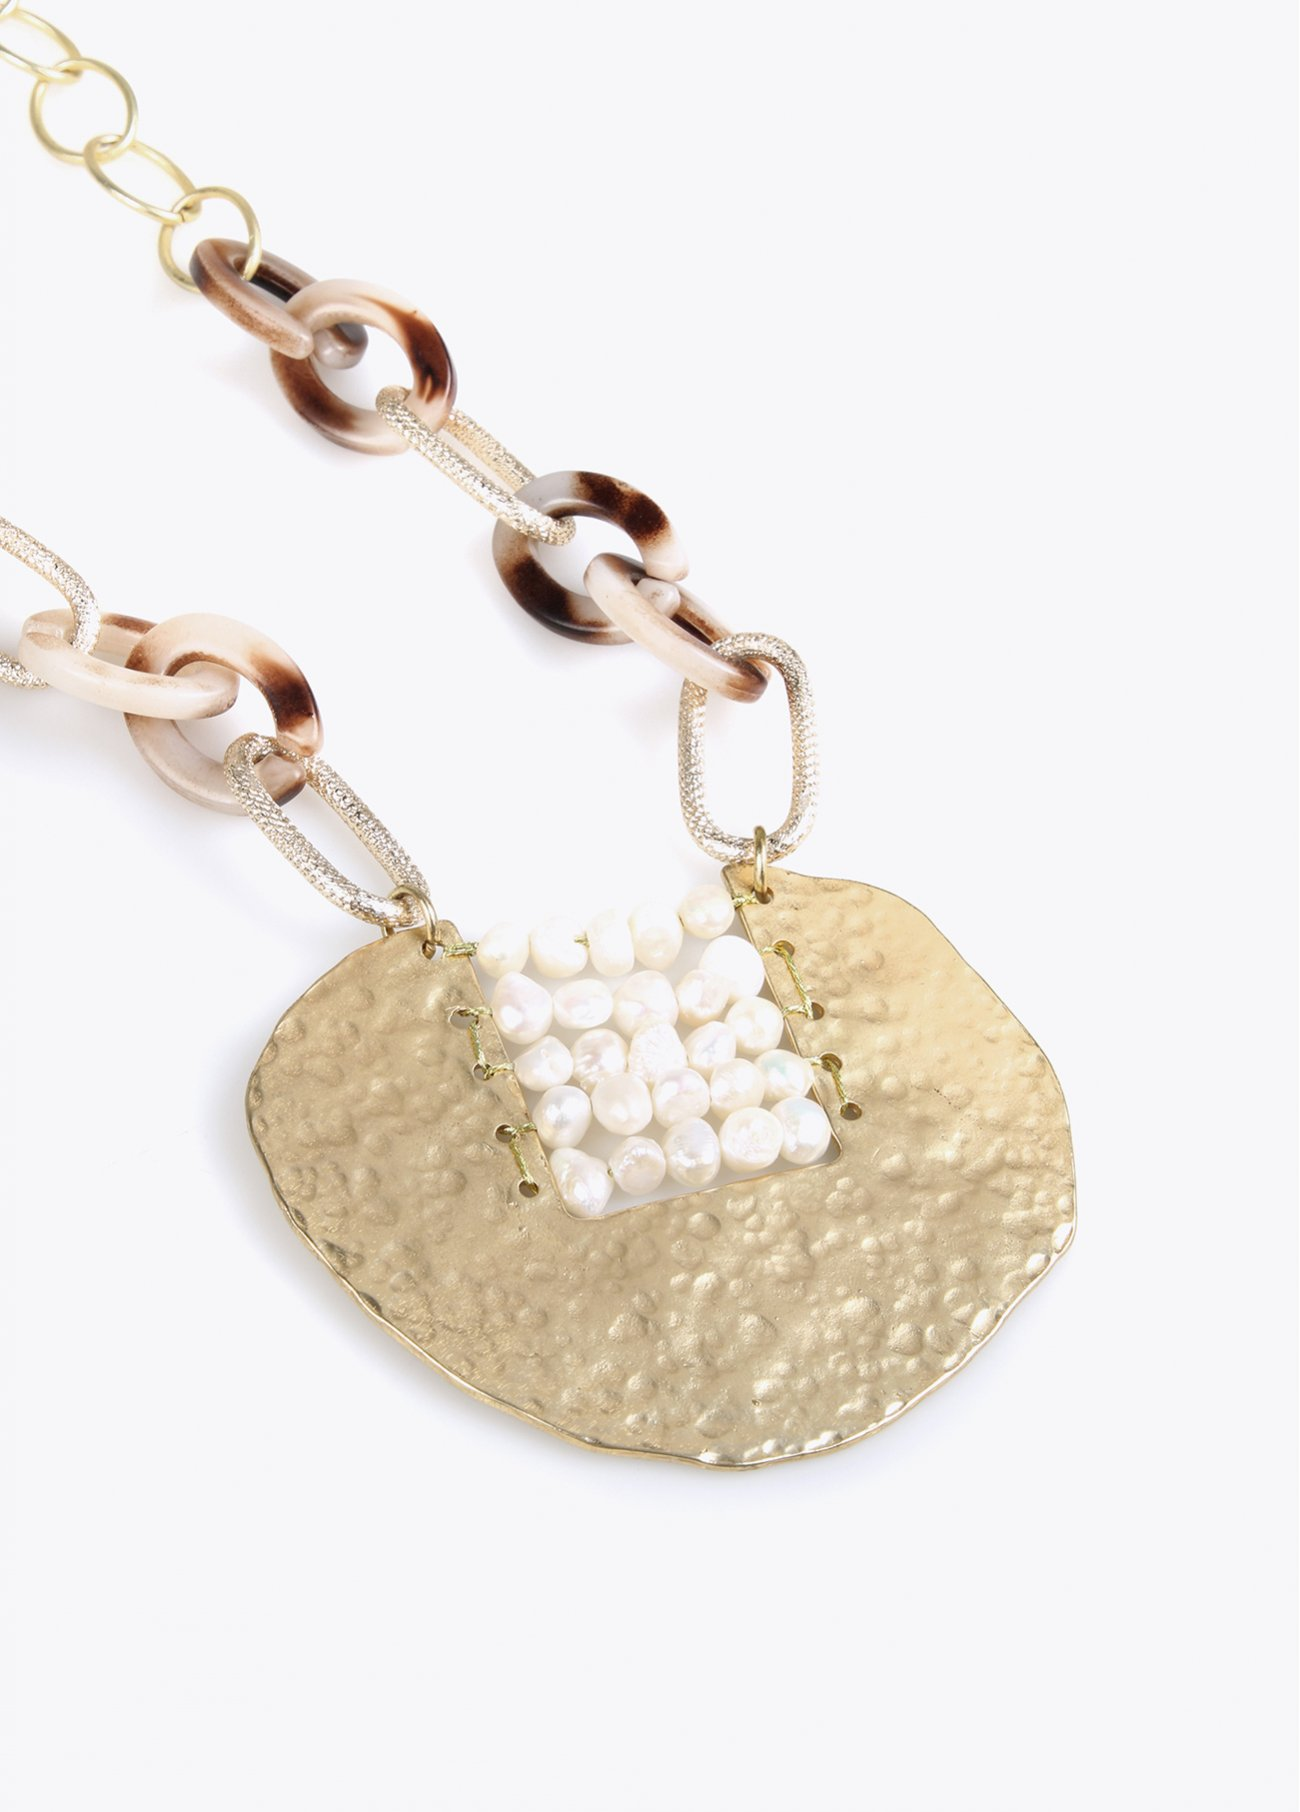 Necklace with pearls gold pc pendant